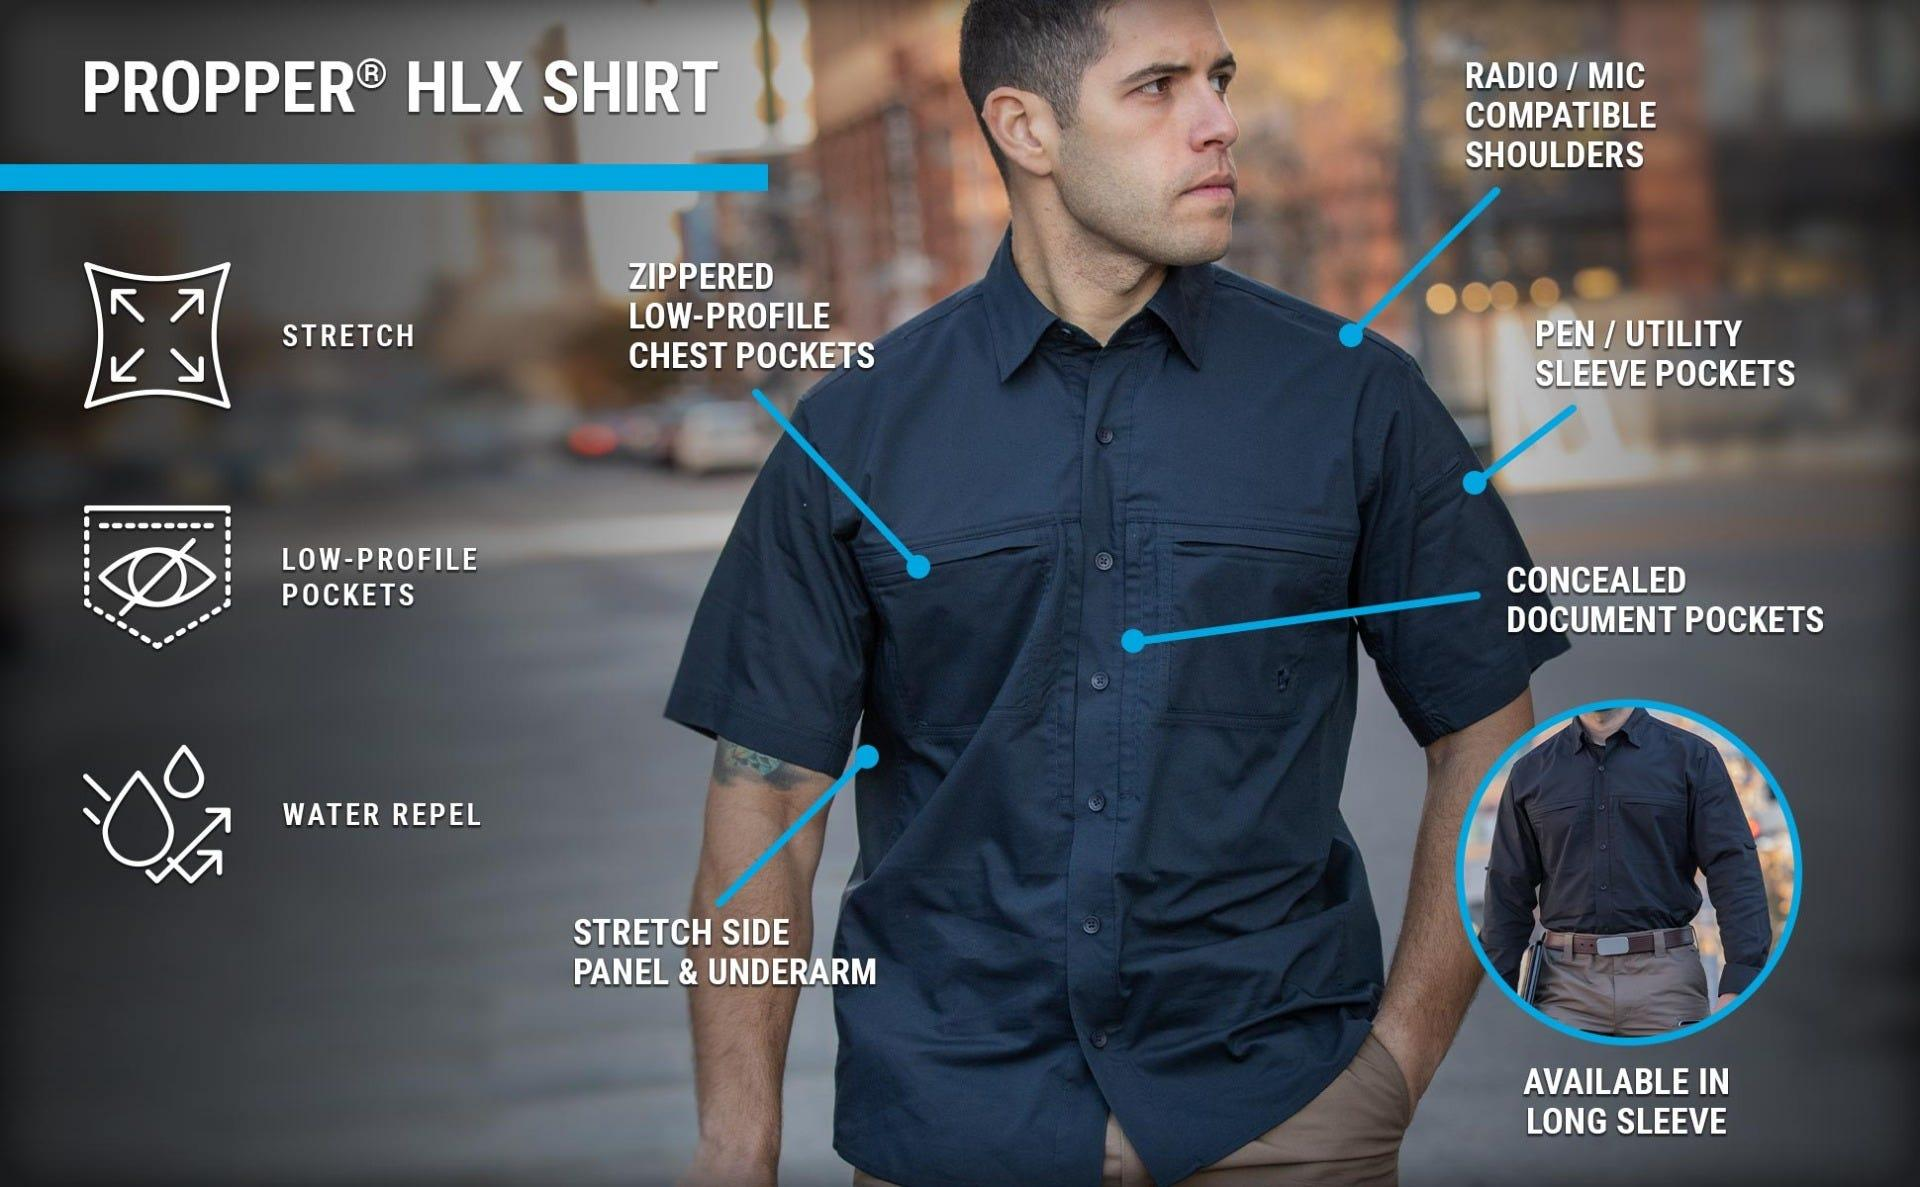 Casual navy long sleeve button down shirt untucked on guy walking in city with concealed pockets.